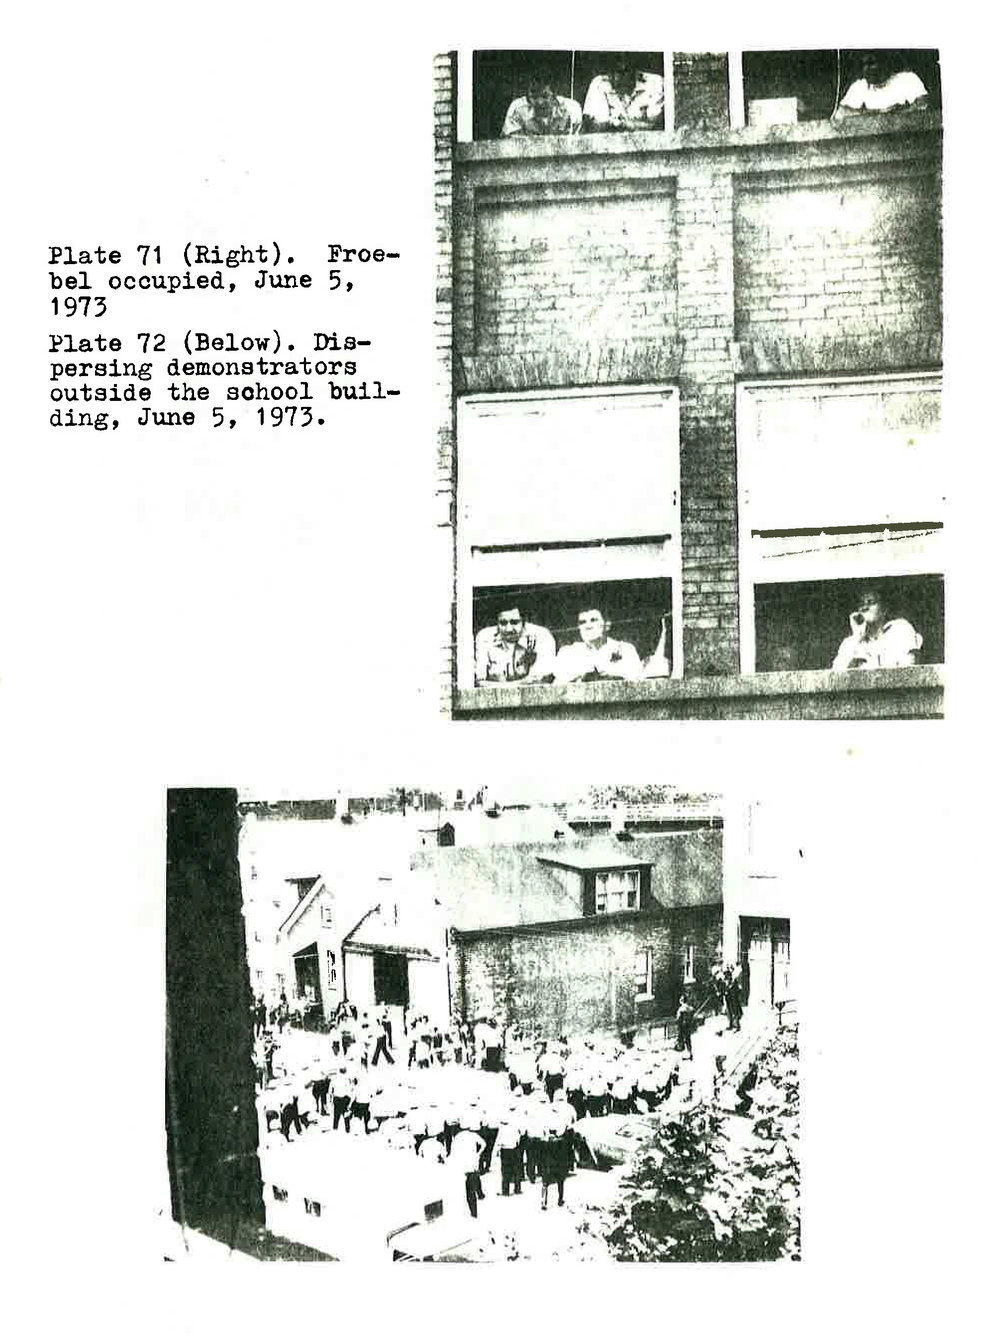 A view from outside looking in, and a view from inside the school as riot cops round up the protesters.  (from Bishop, 1974)